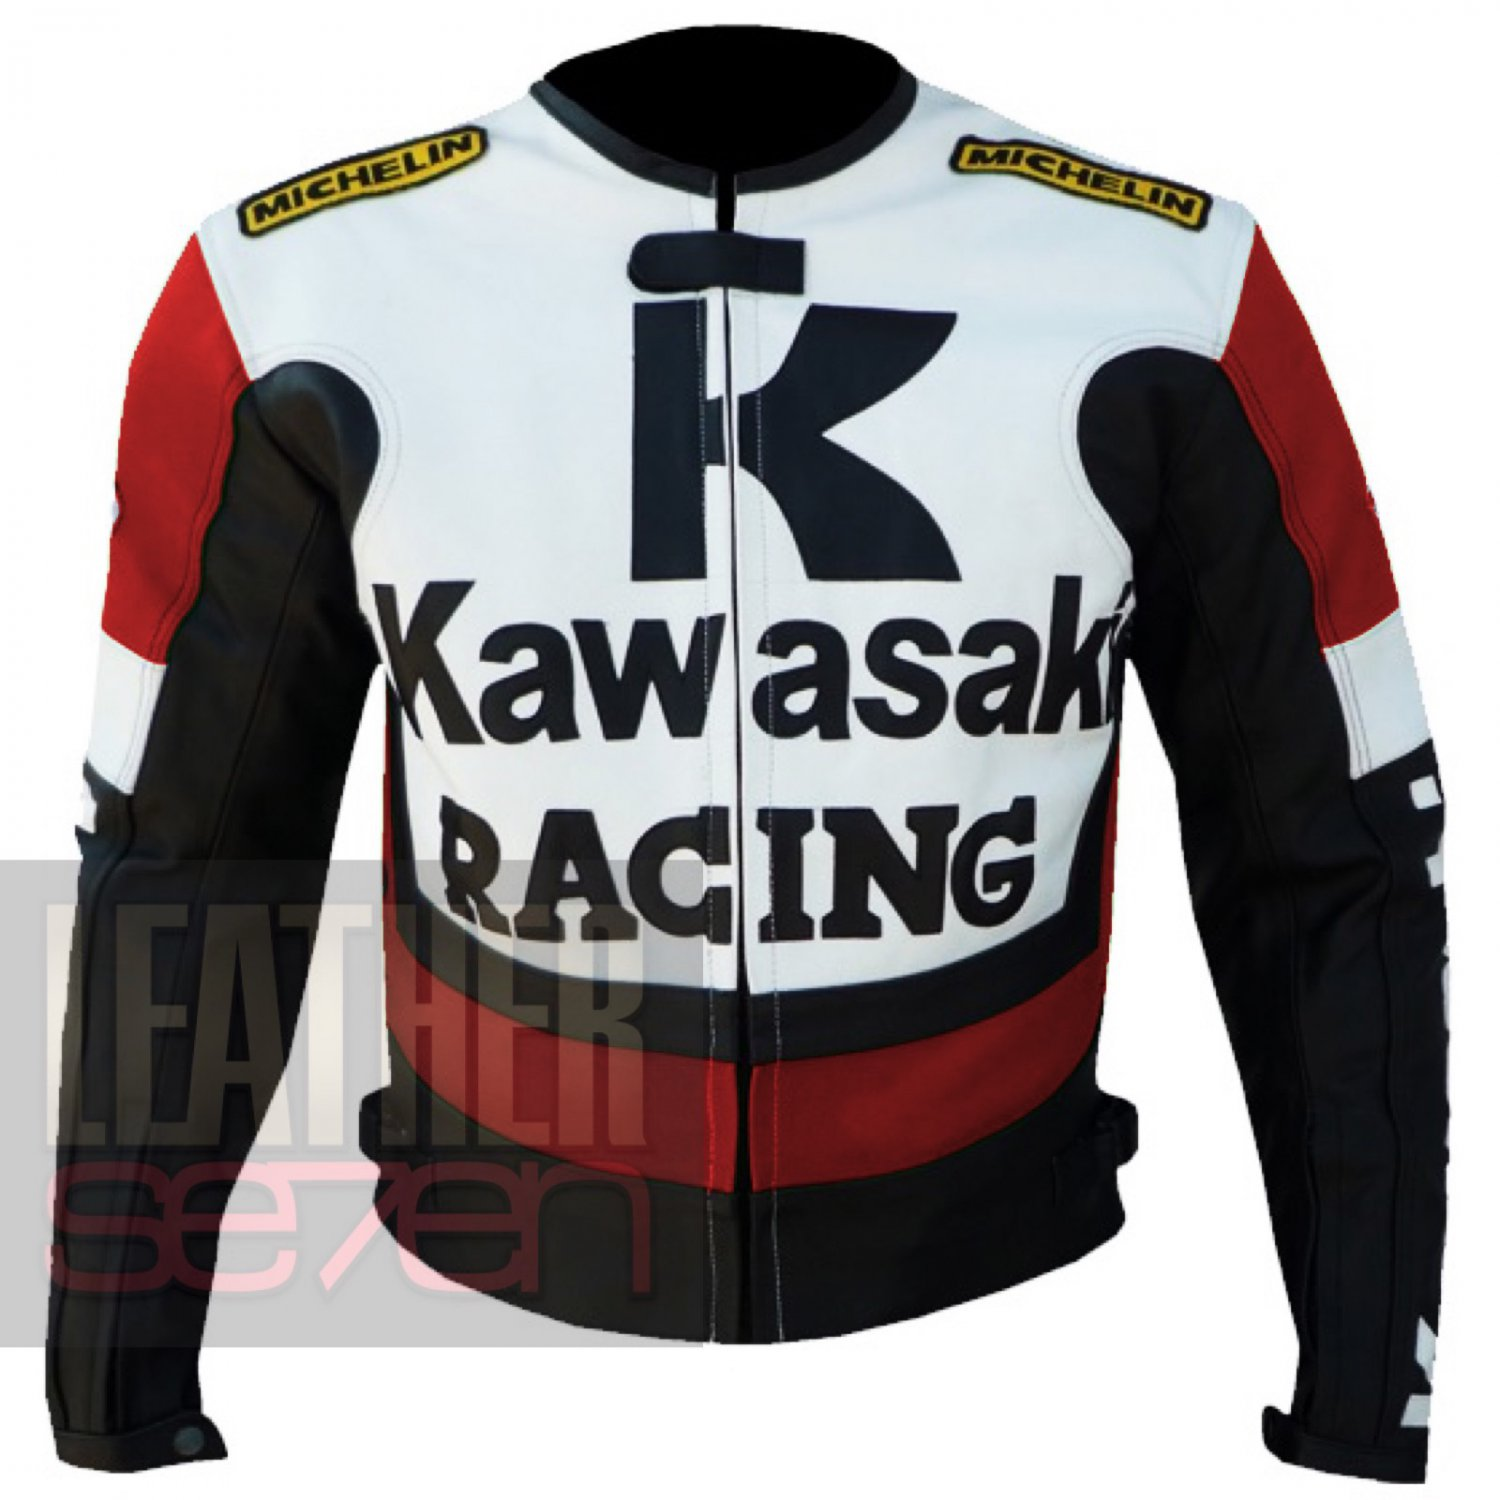 Kawasaki 1 Red Pure Cowhide Leather Safety Racing Jacket For Bike Racers ..